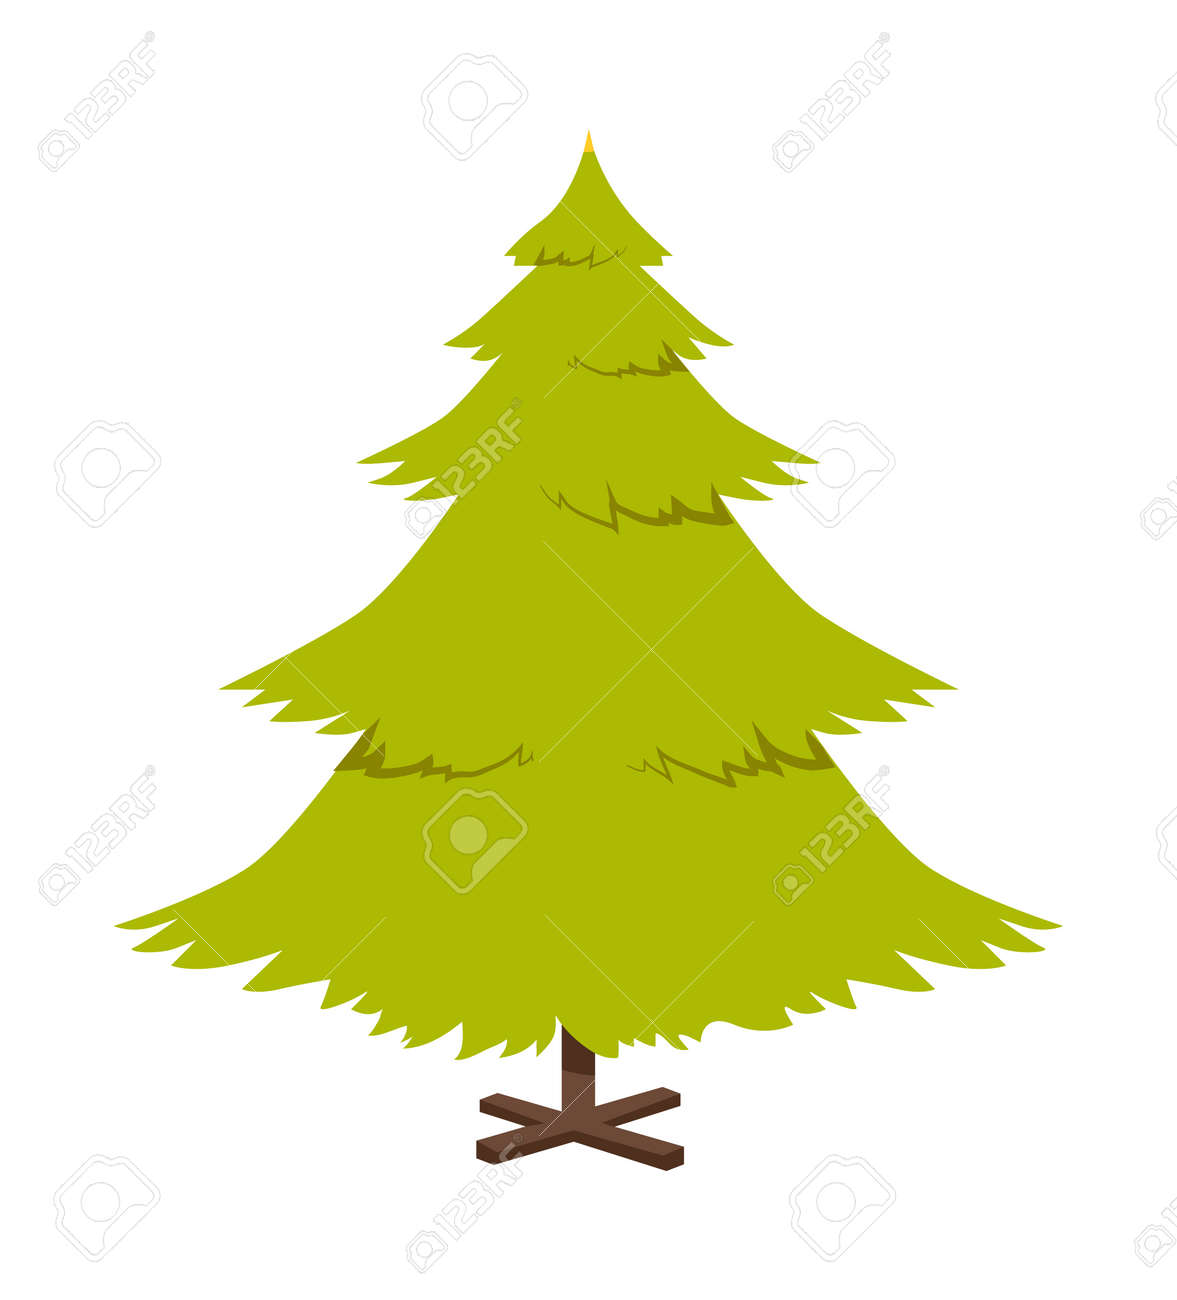 Christmas Pine Tree Poster With Symbolic Decoration During